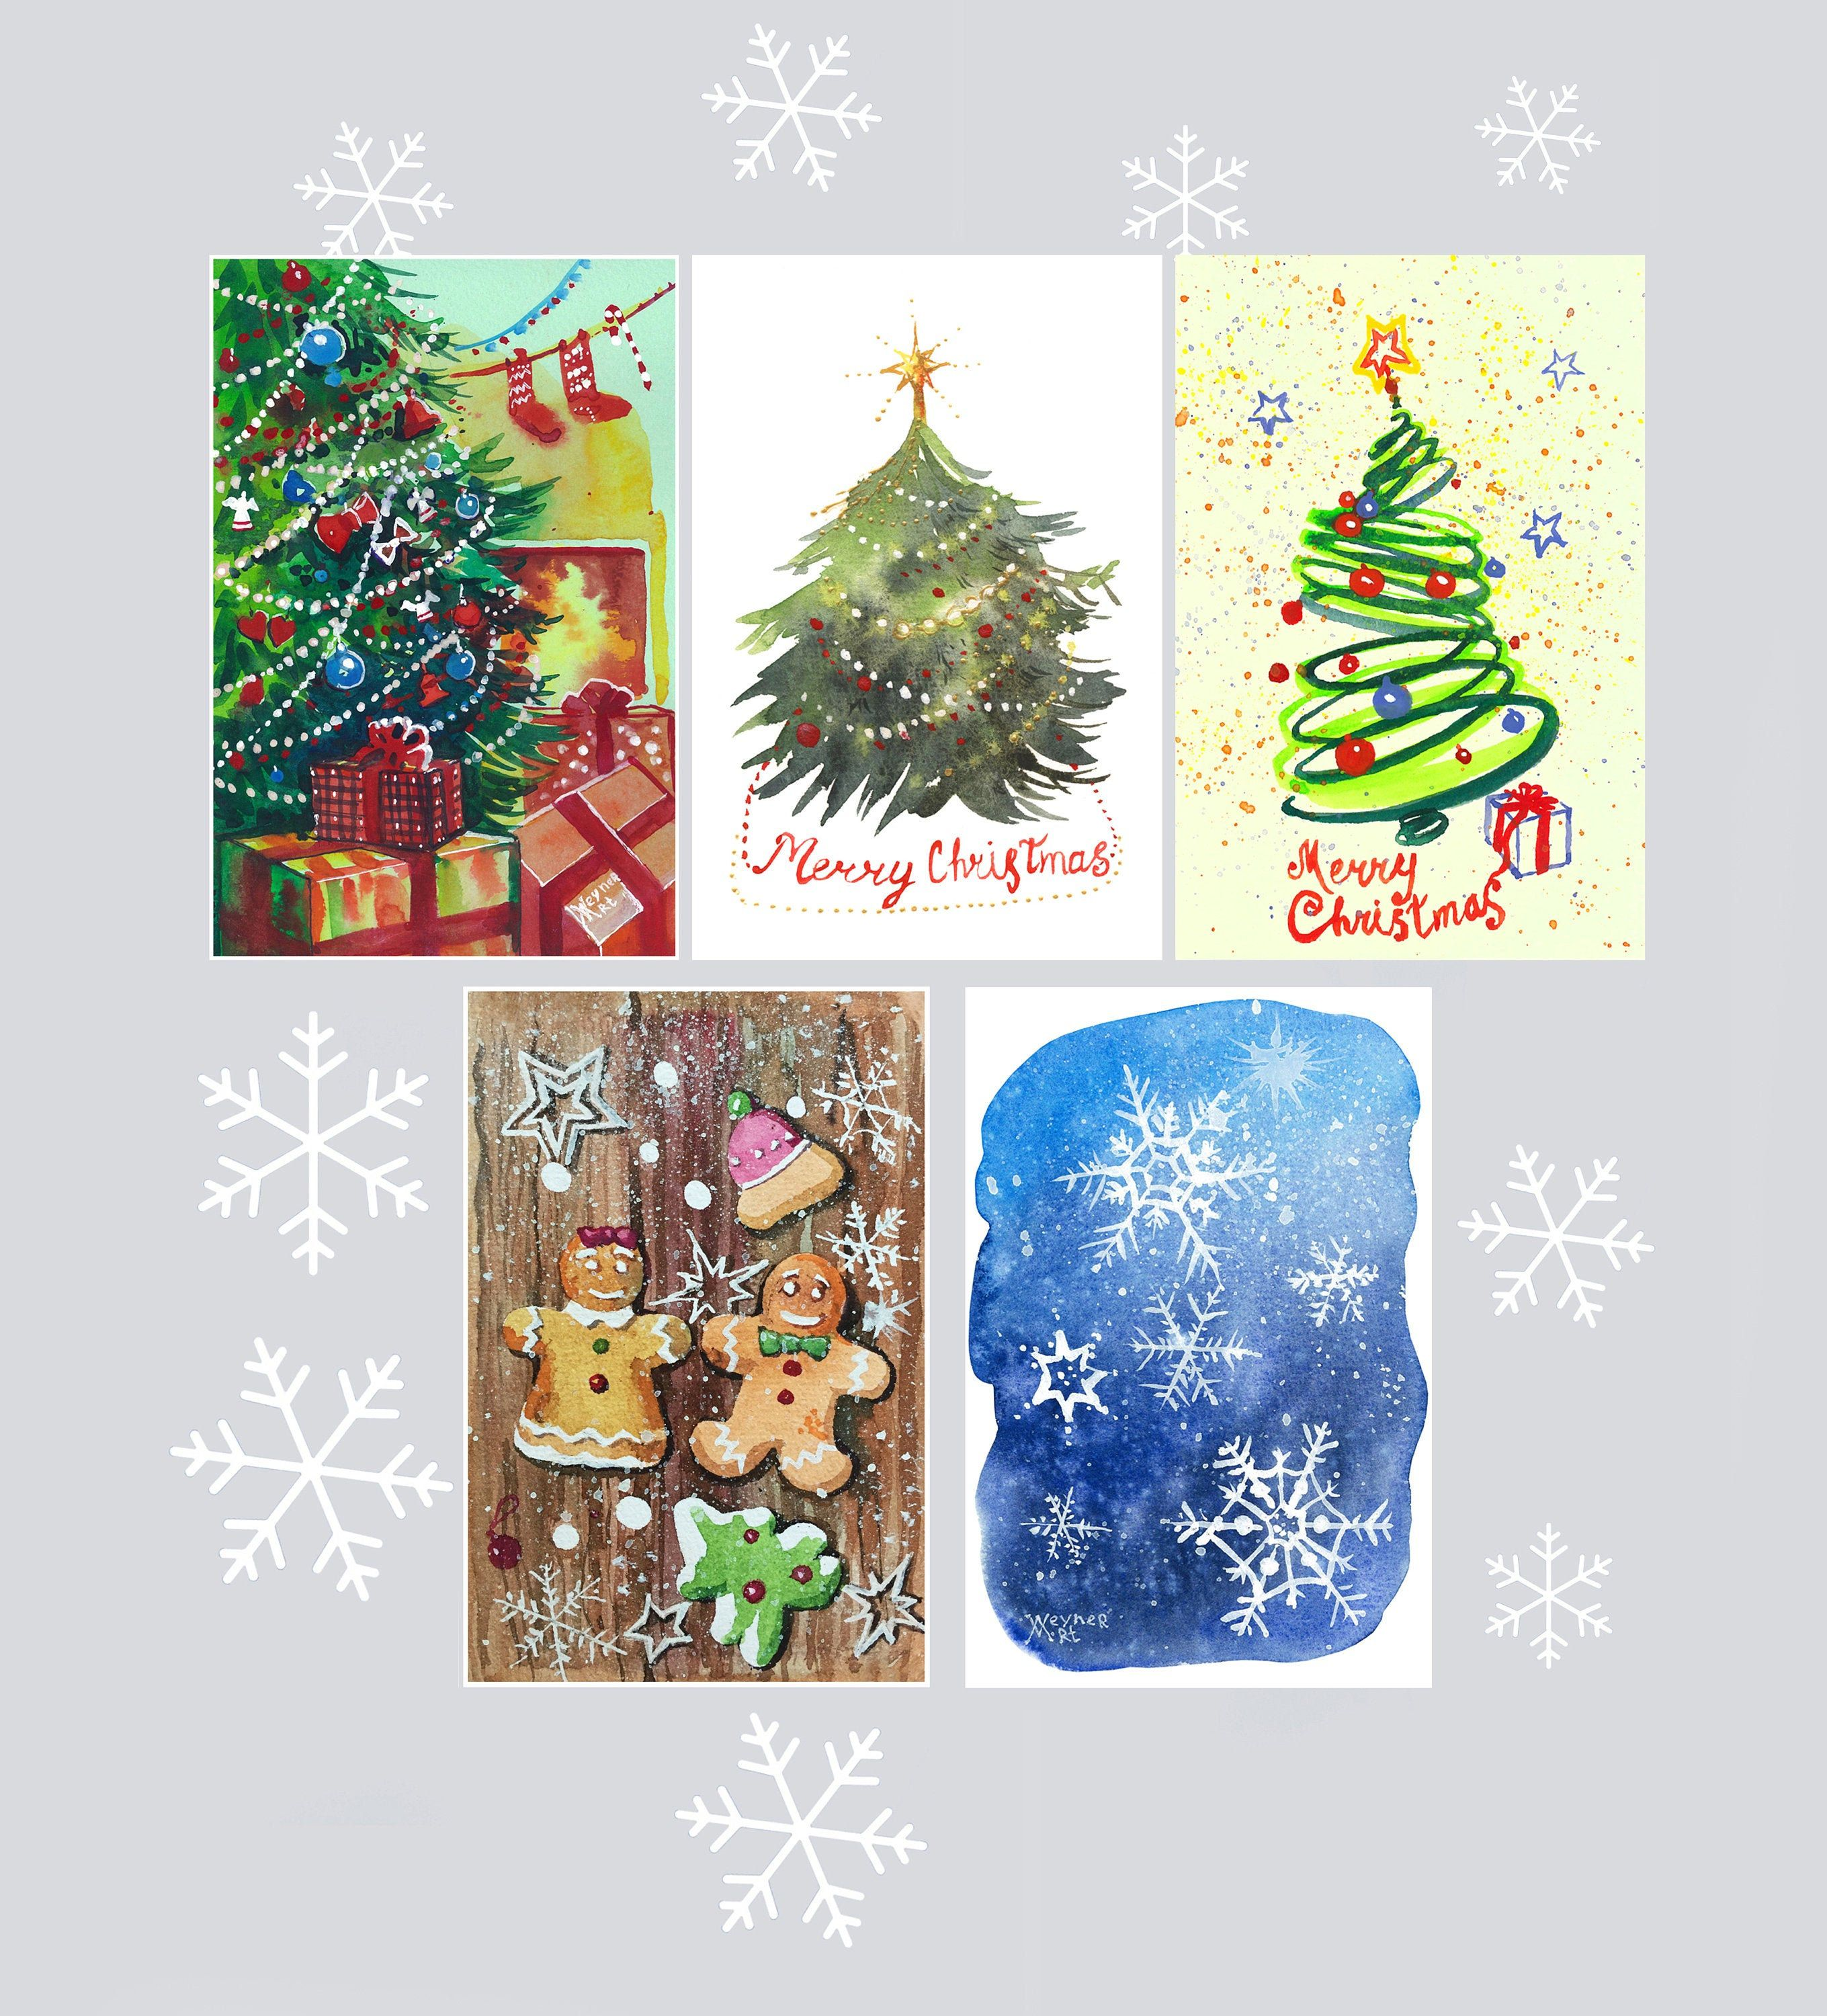 Digital Christmas Cards Christmas Cards For Print Handmade Christmas Cards Christmas Prints Digital Christmas Cards Christmas Art Christmas Cards Handmade